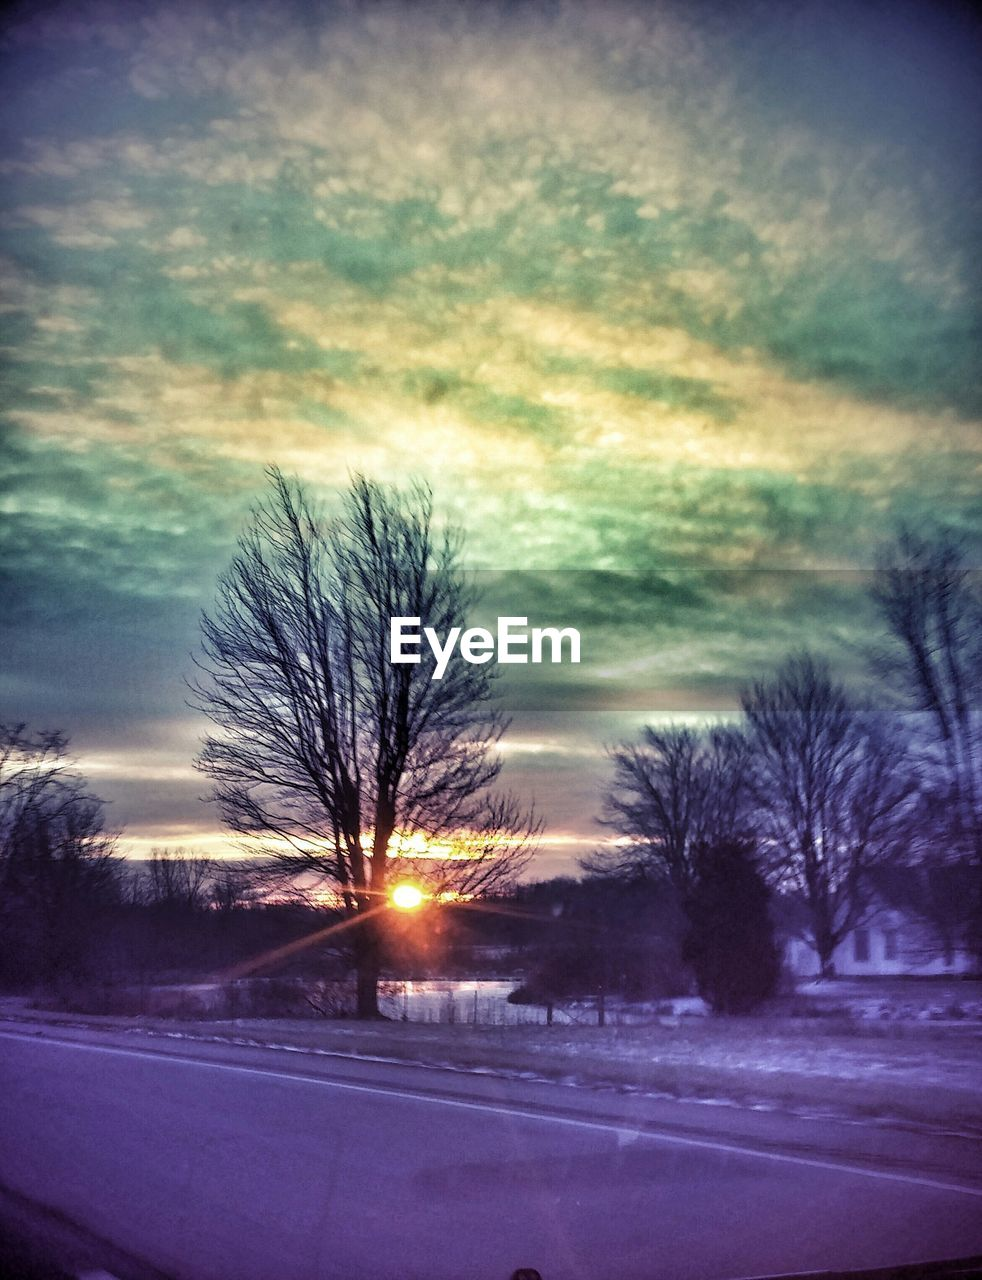 tree, weather, sky, cloud - sky, bare tree, snow, road, nature, dramatic sky, winter, dusk, scenics, sunset, car, cold temperature, beauty in nature, landscape, no people, outdoors, silhouette, night, tranquility, illuminated, storm cloud